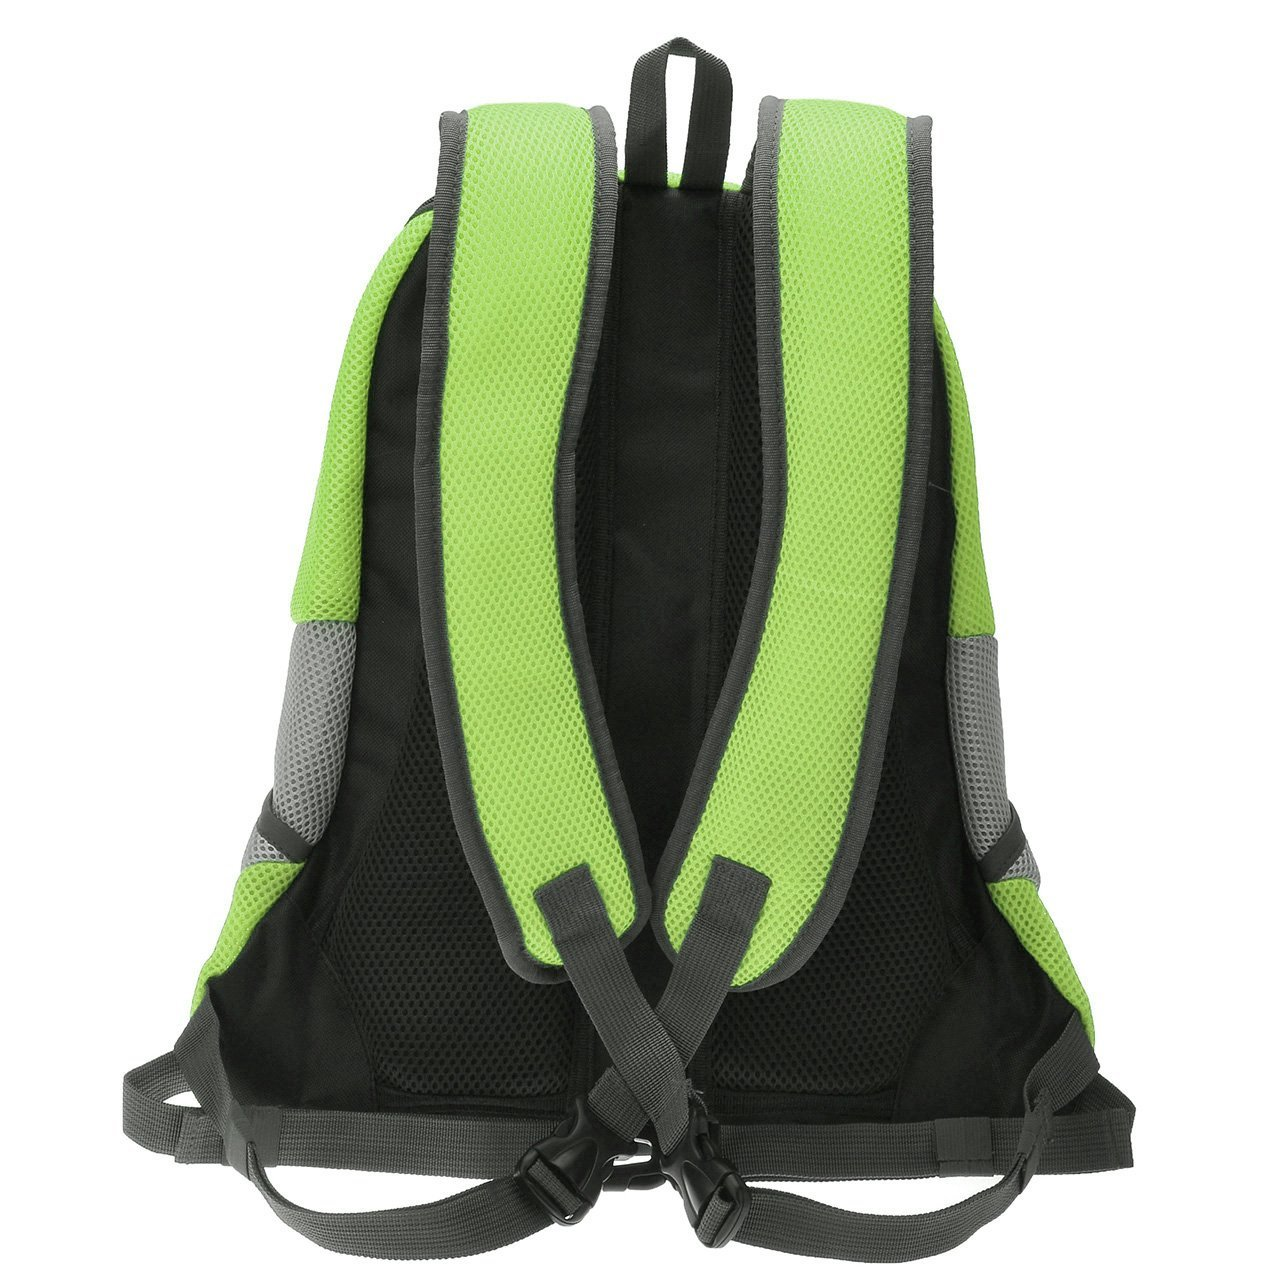 CozyCabin Latest Style Comfortable Dog Cat Pet Carrier Backpack Travel Carrier Bag Front for Small dogs Puppy Carrier Bike Hiking Outdoor (L, Green)